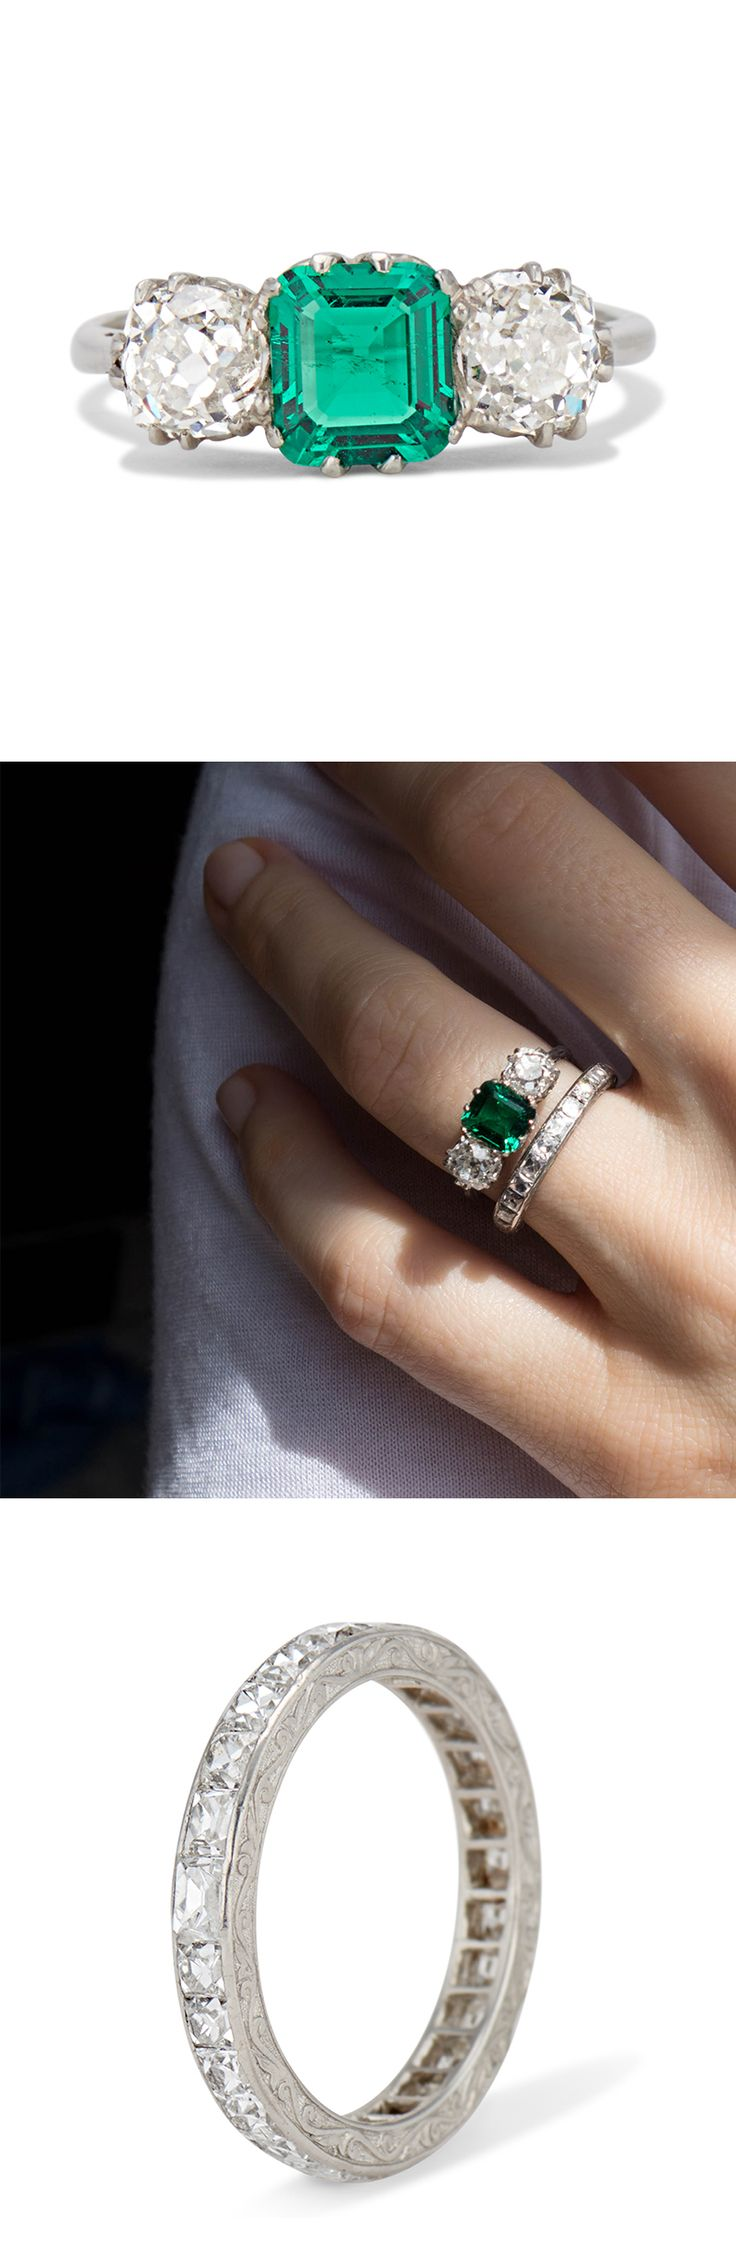 1309 best Quest for Wedding Dresses and Engagement Rings images on